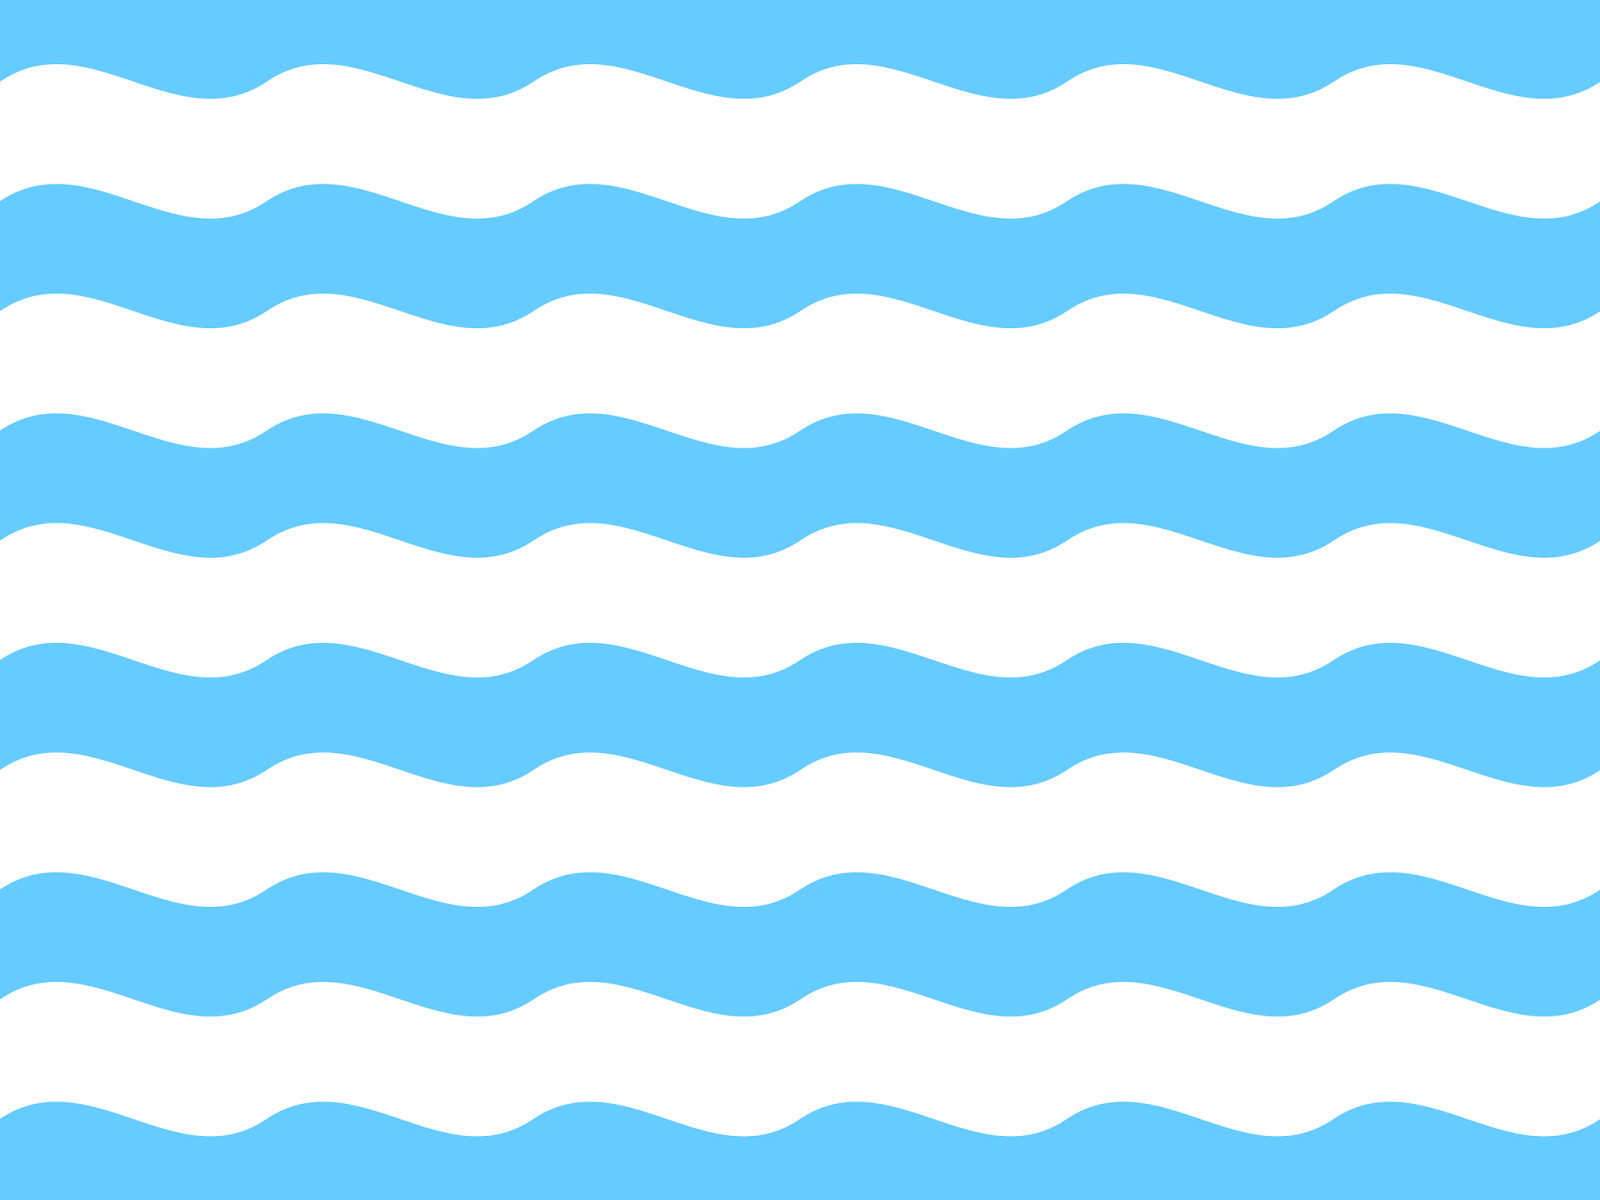 Sea clipart wave pattern #1